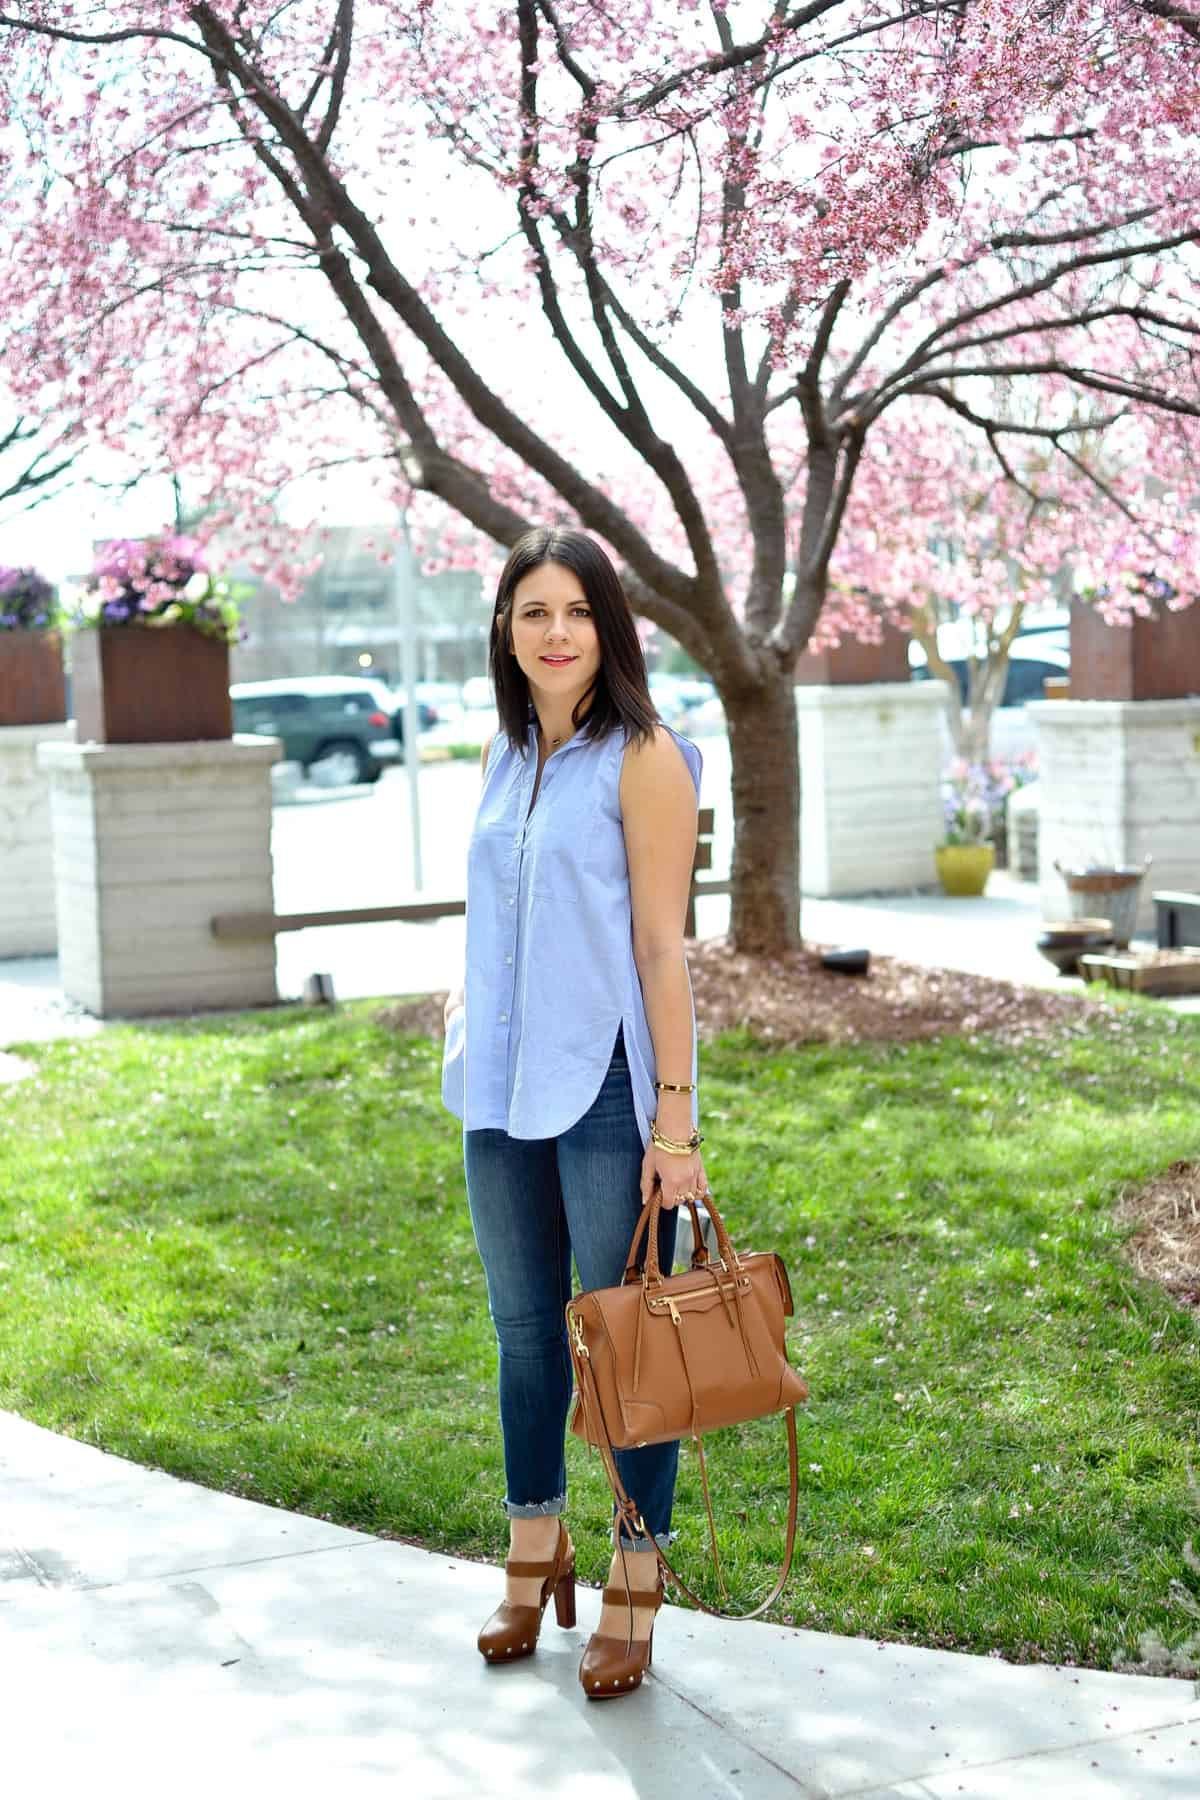 Vince Camuto Elric Shoe for spring - My Style Vita - @mystylevita - 12